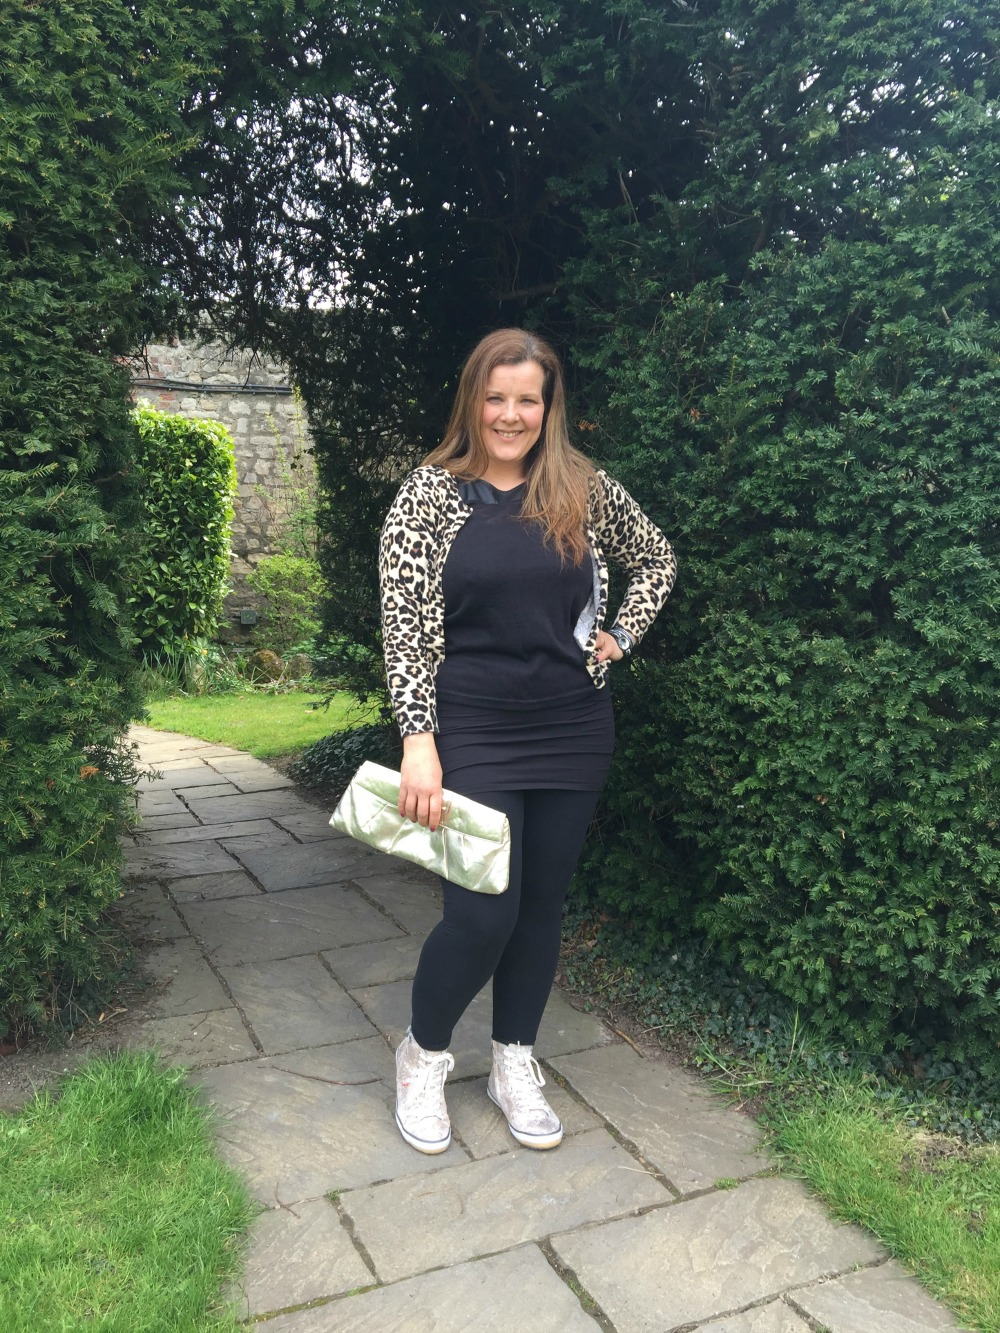 Wolky leopard cardi and bag